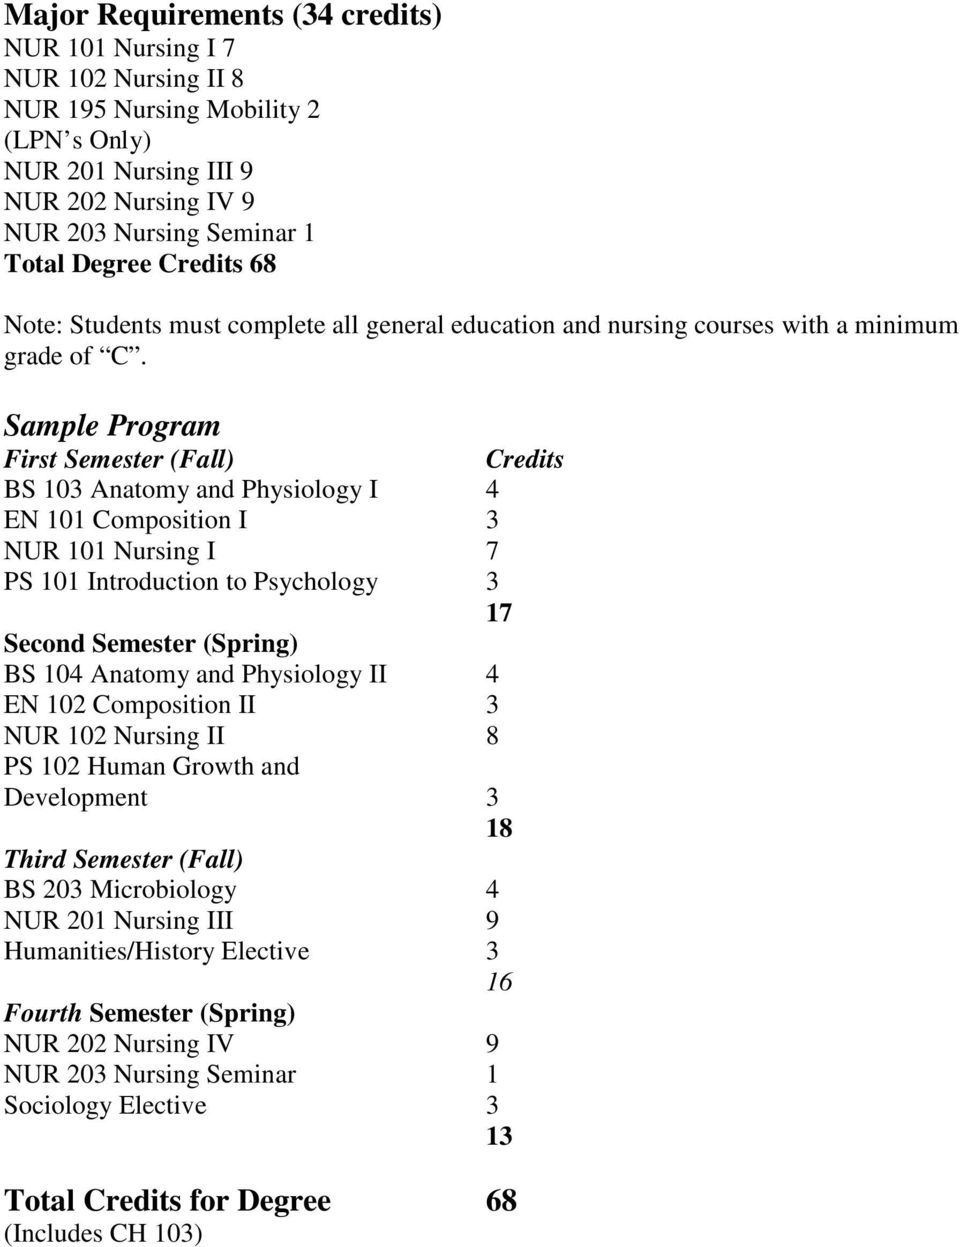 Sample Program First Semester (Fall) Credits BS 103 Anatomy and Physiology I 4 EN 101 Composition I 3 NUR 101 Nursing I 7 PS 101 Introduction to Psychology 3 17 Second Semester (Spring) BS 104